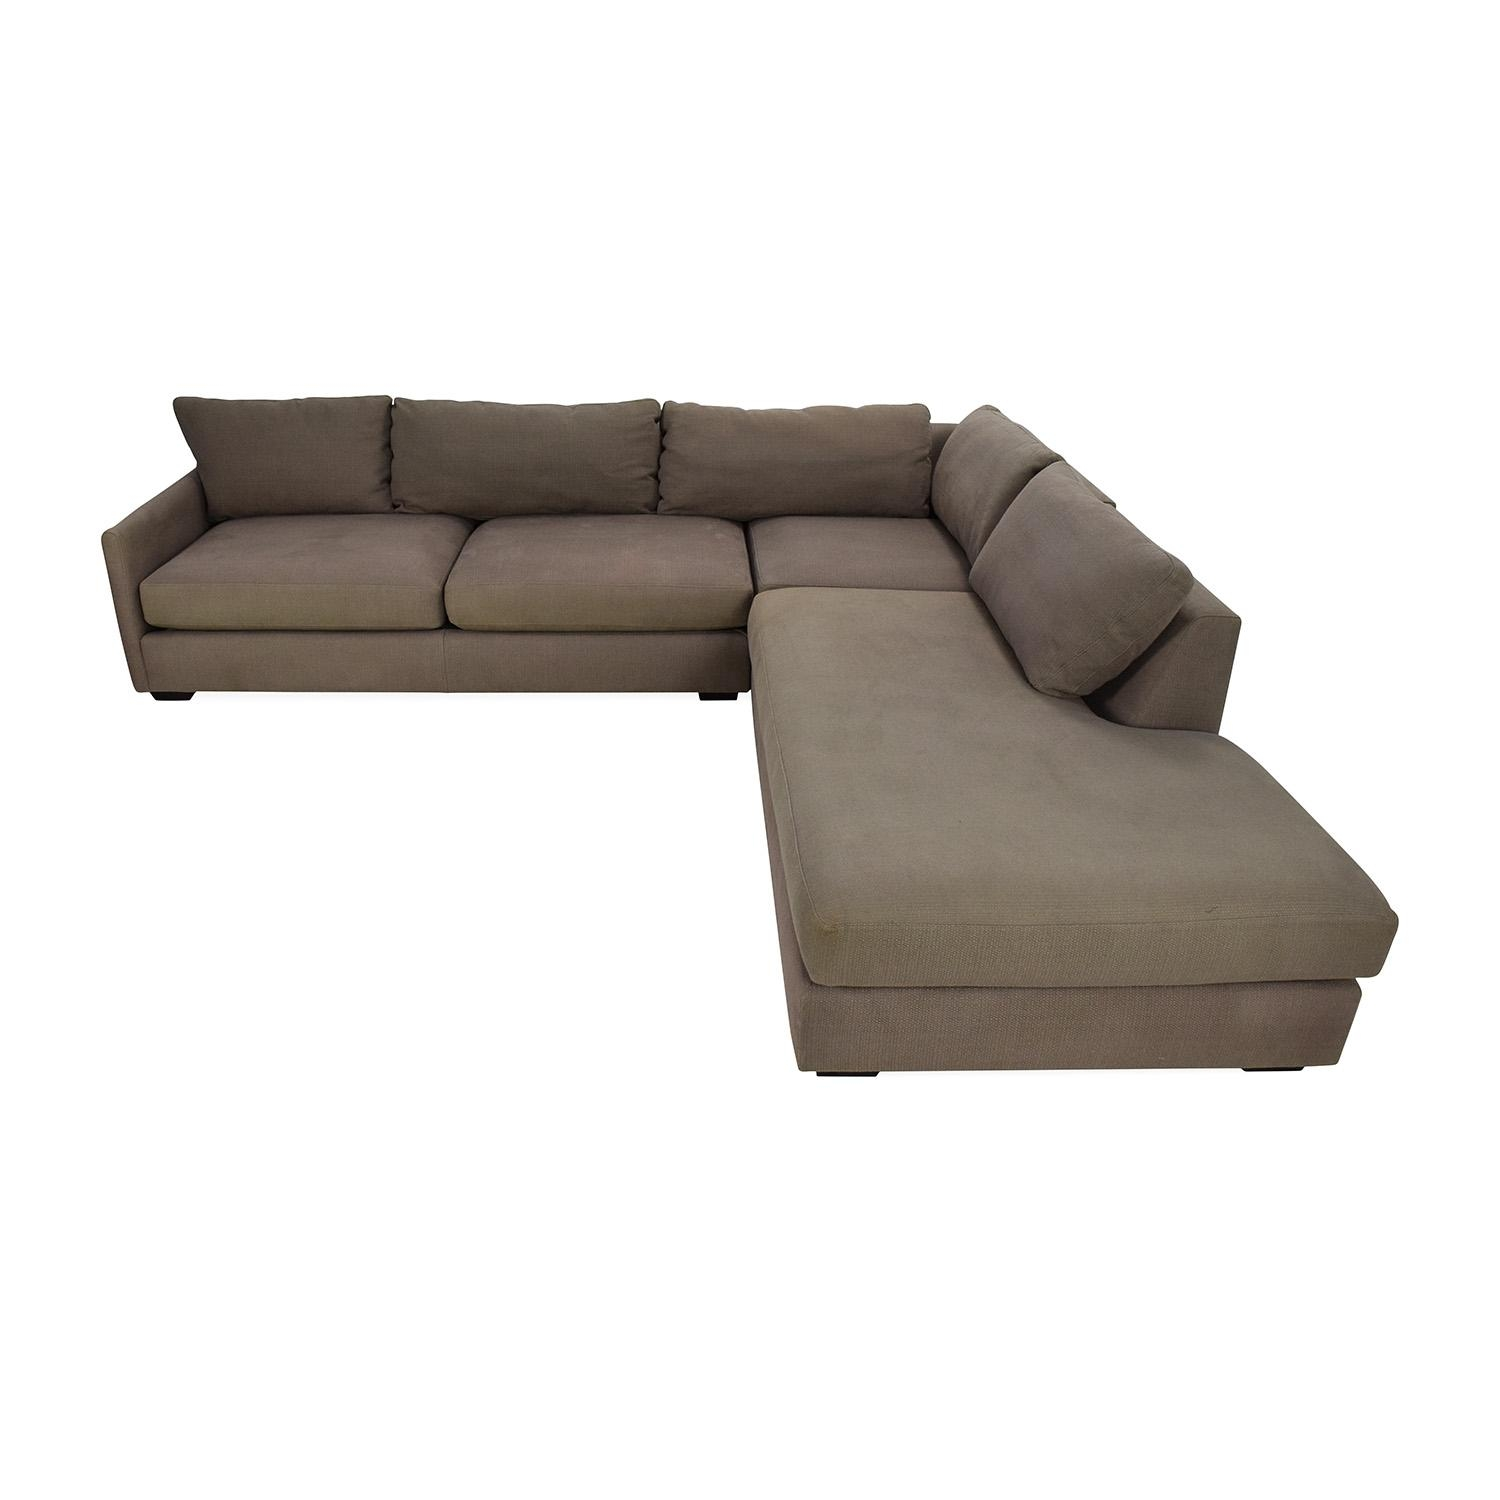 82% Off - Crate And Barrel Crate & Barrel Domino Sectional Sofa in Sectional Crate and Barrel